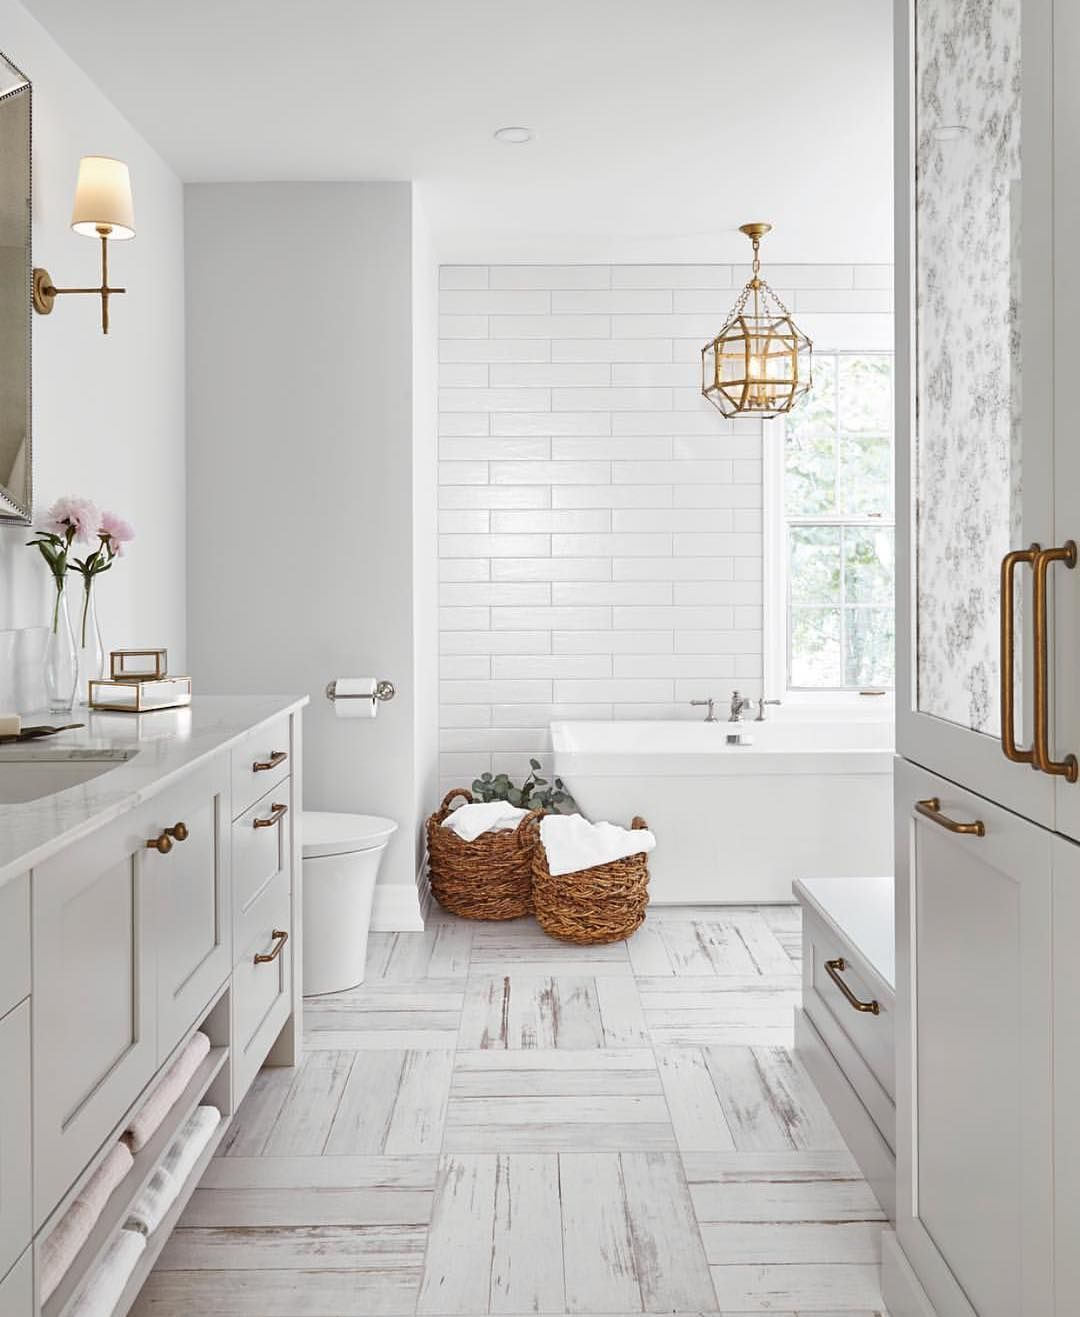 8814 likes 113 comments becki owens beckiowens on instagram another very cool way of installing floor tiles but im afraid my bathroom isnt large enough for this pattern dailygadgetfo Choice Image